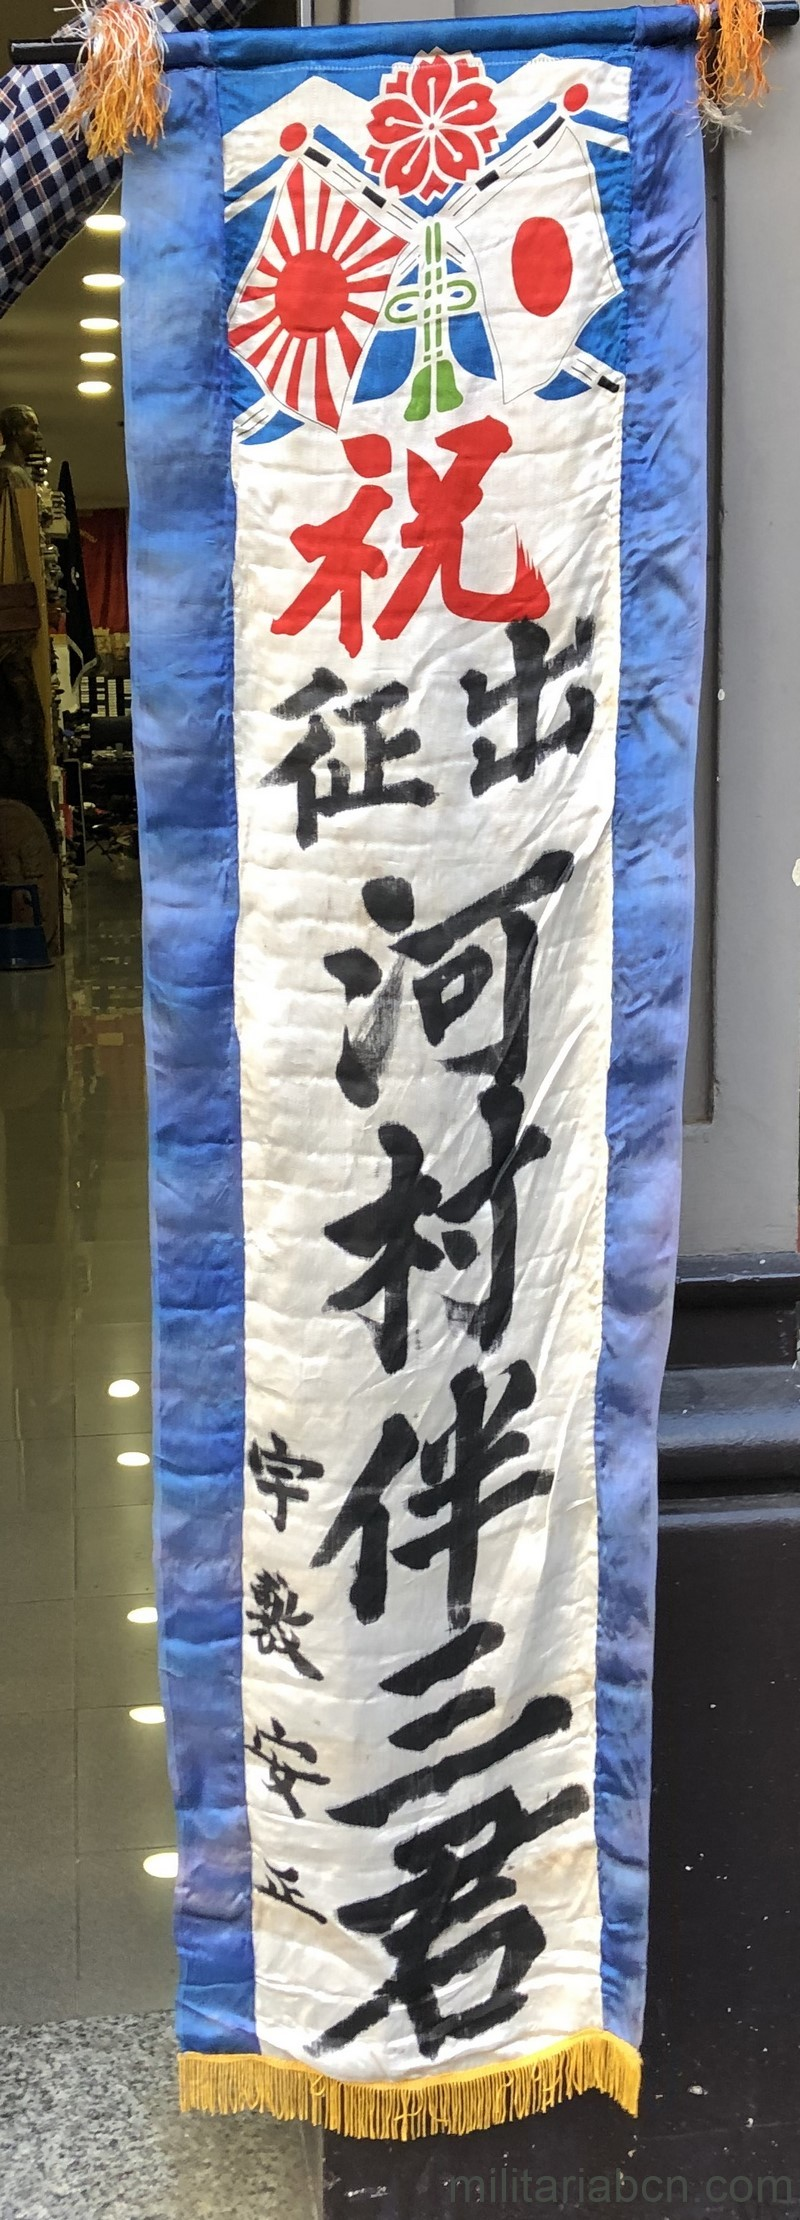 Militaria Barcelona Japan.  Banner (hinomaru or Shussei nobori) dedicated to a soldier on the march to war.  World War II period.  157 x 43 cm.  Silk. large